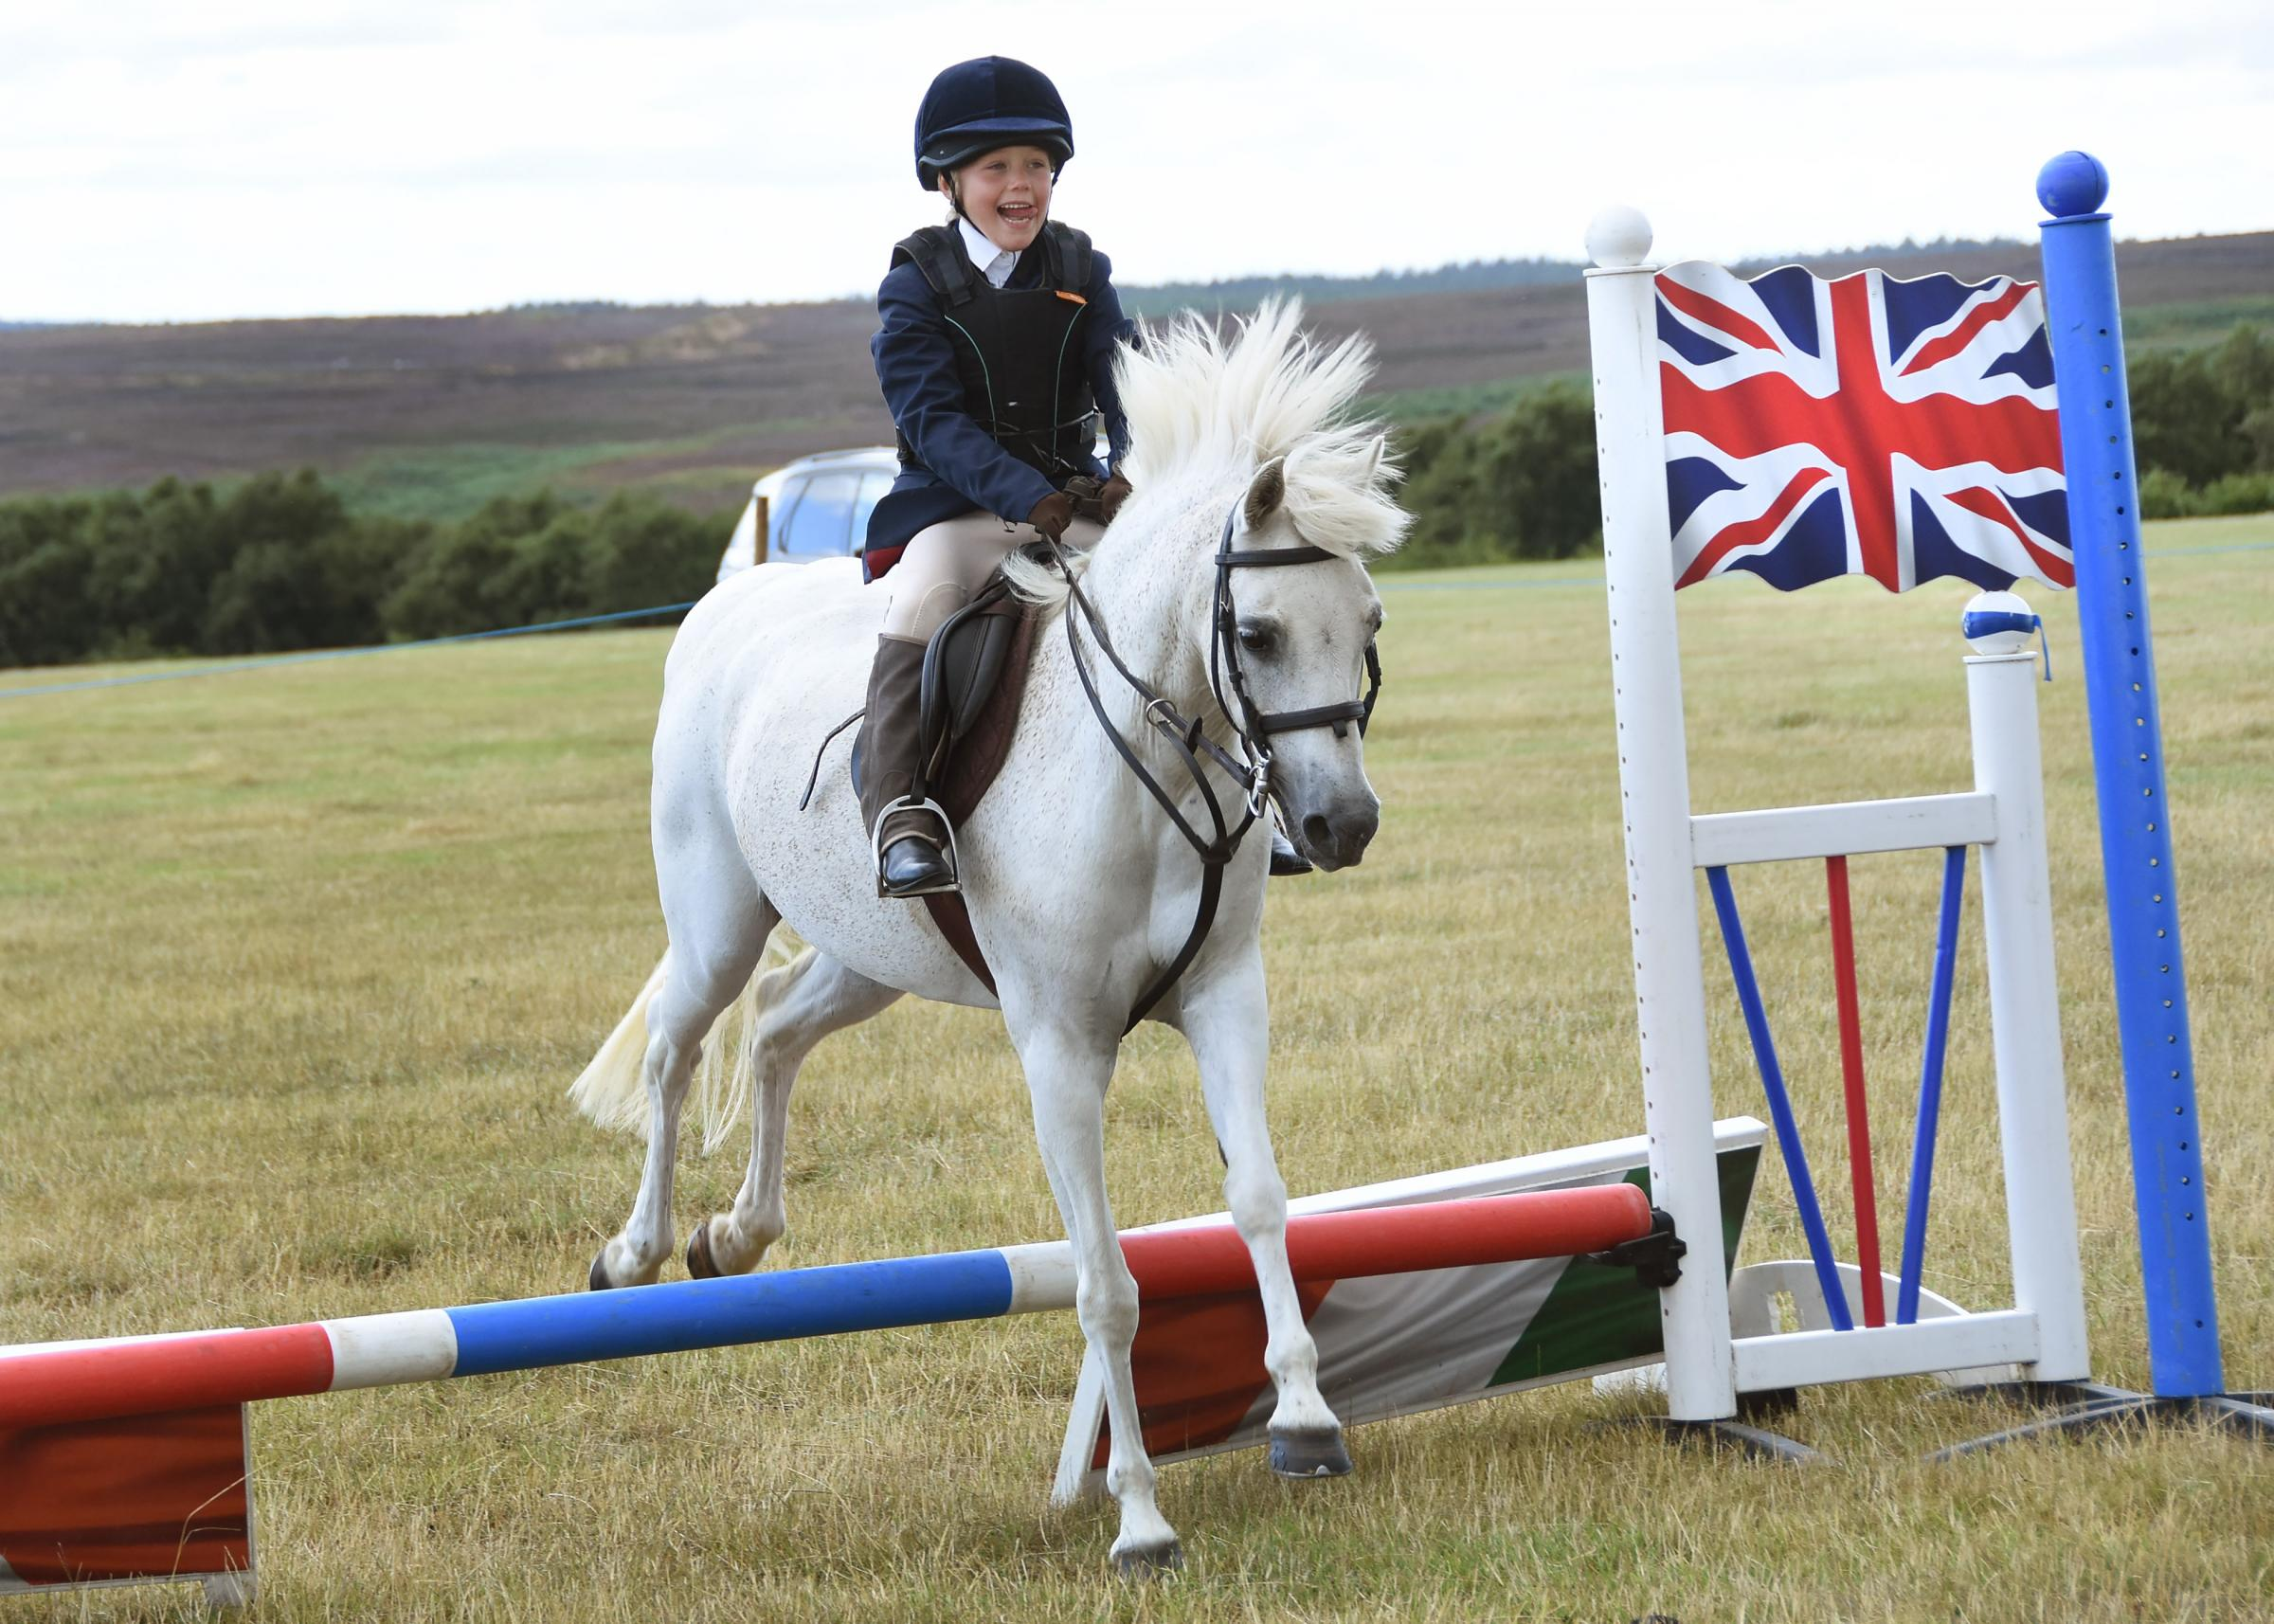 Action in one of the equestrian classes at Saltersgate Show                            Picture: David Harrison